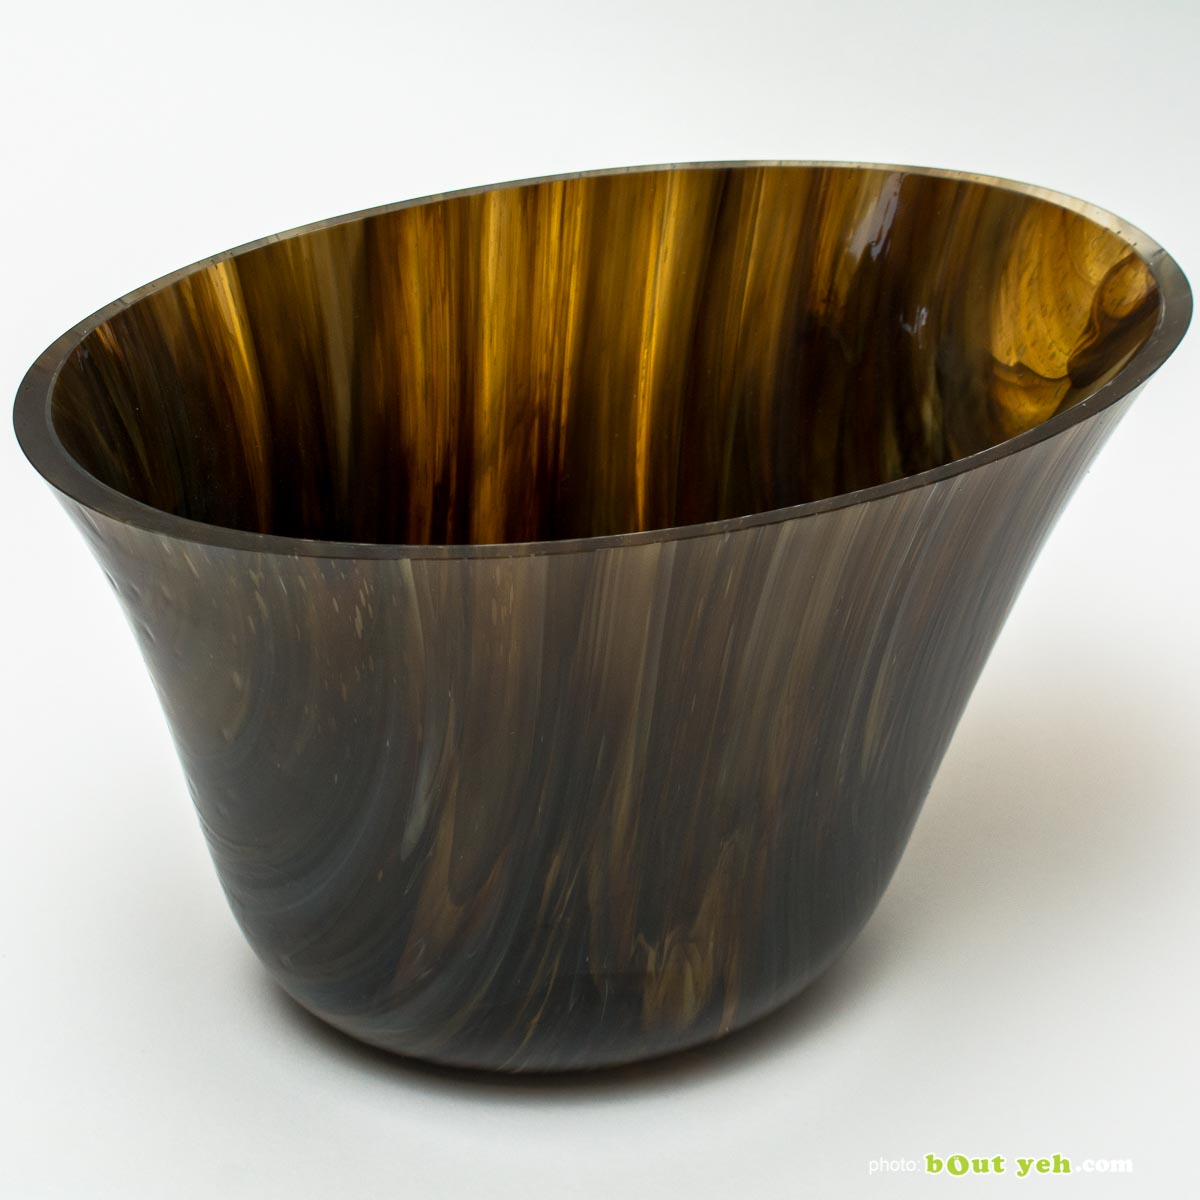 Bullseye eclipse bowl in streaky woodland brown, ivory and black, by Keith Sheppard Irish glassware - photo 1680